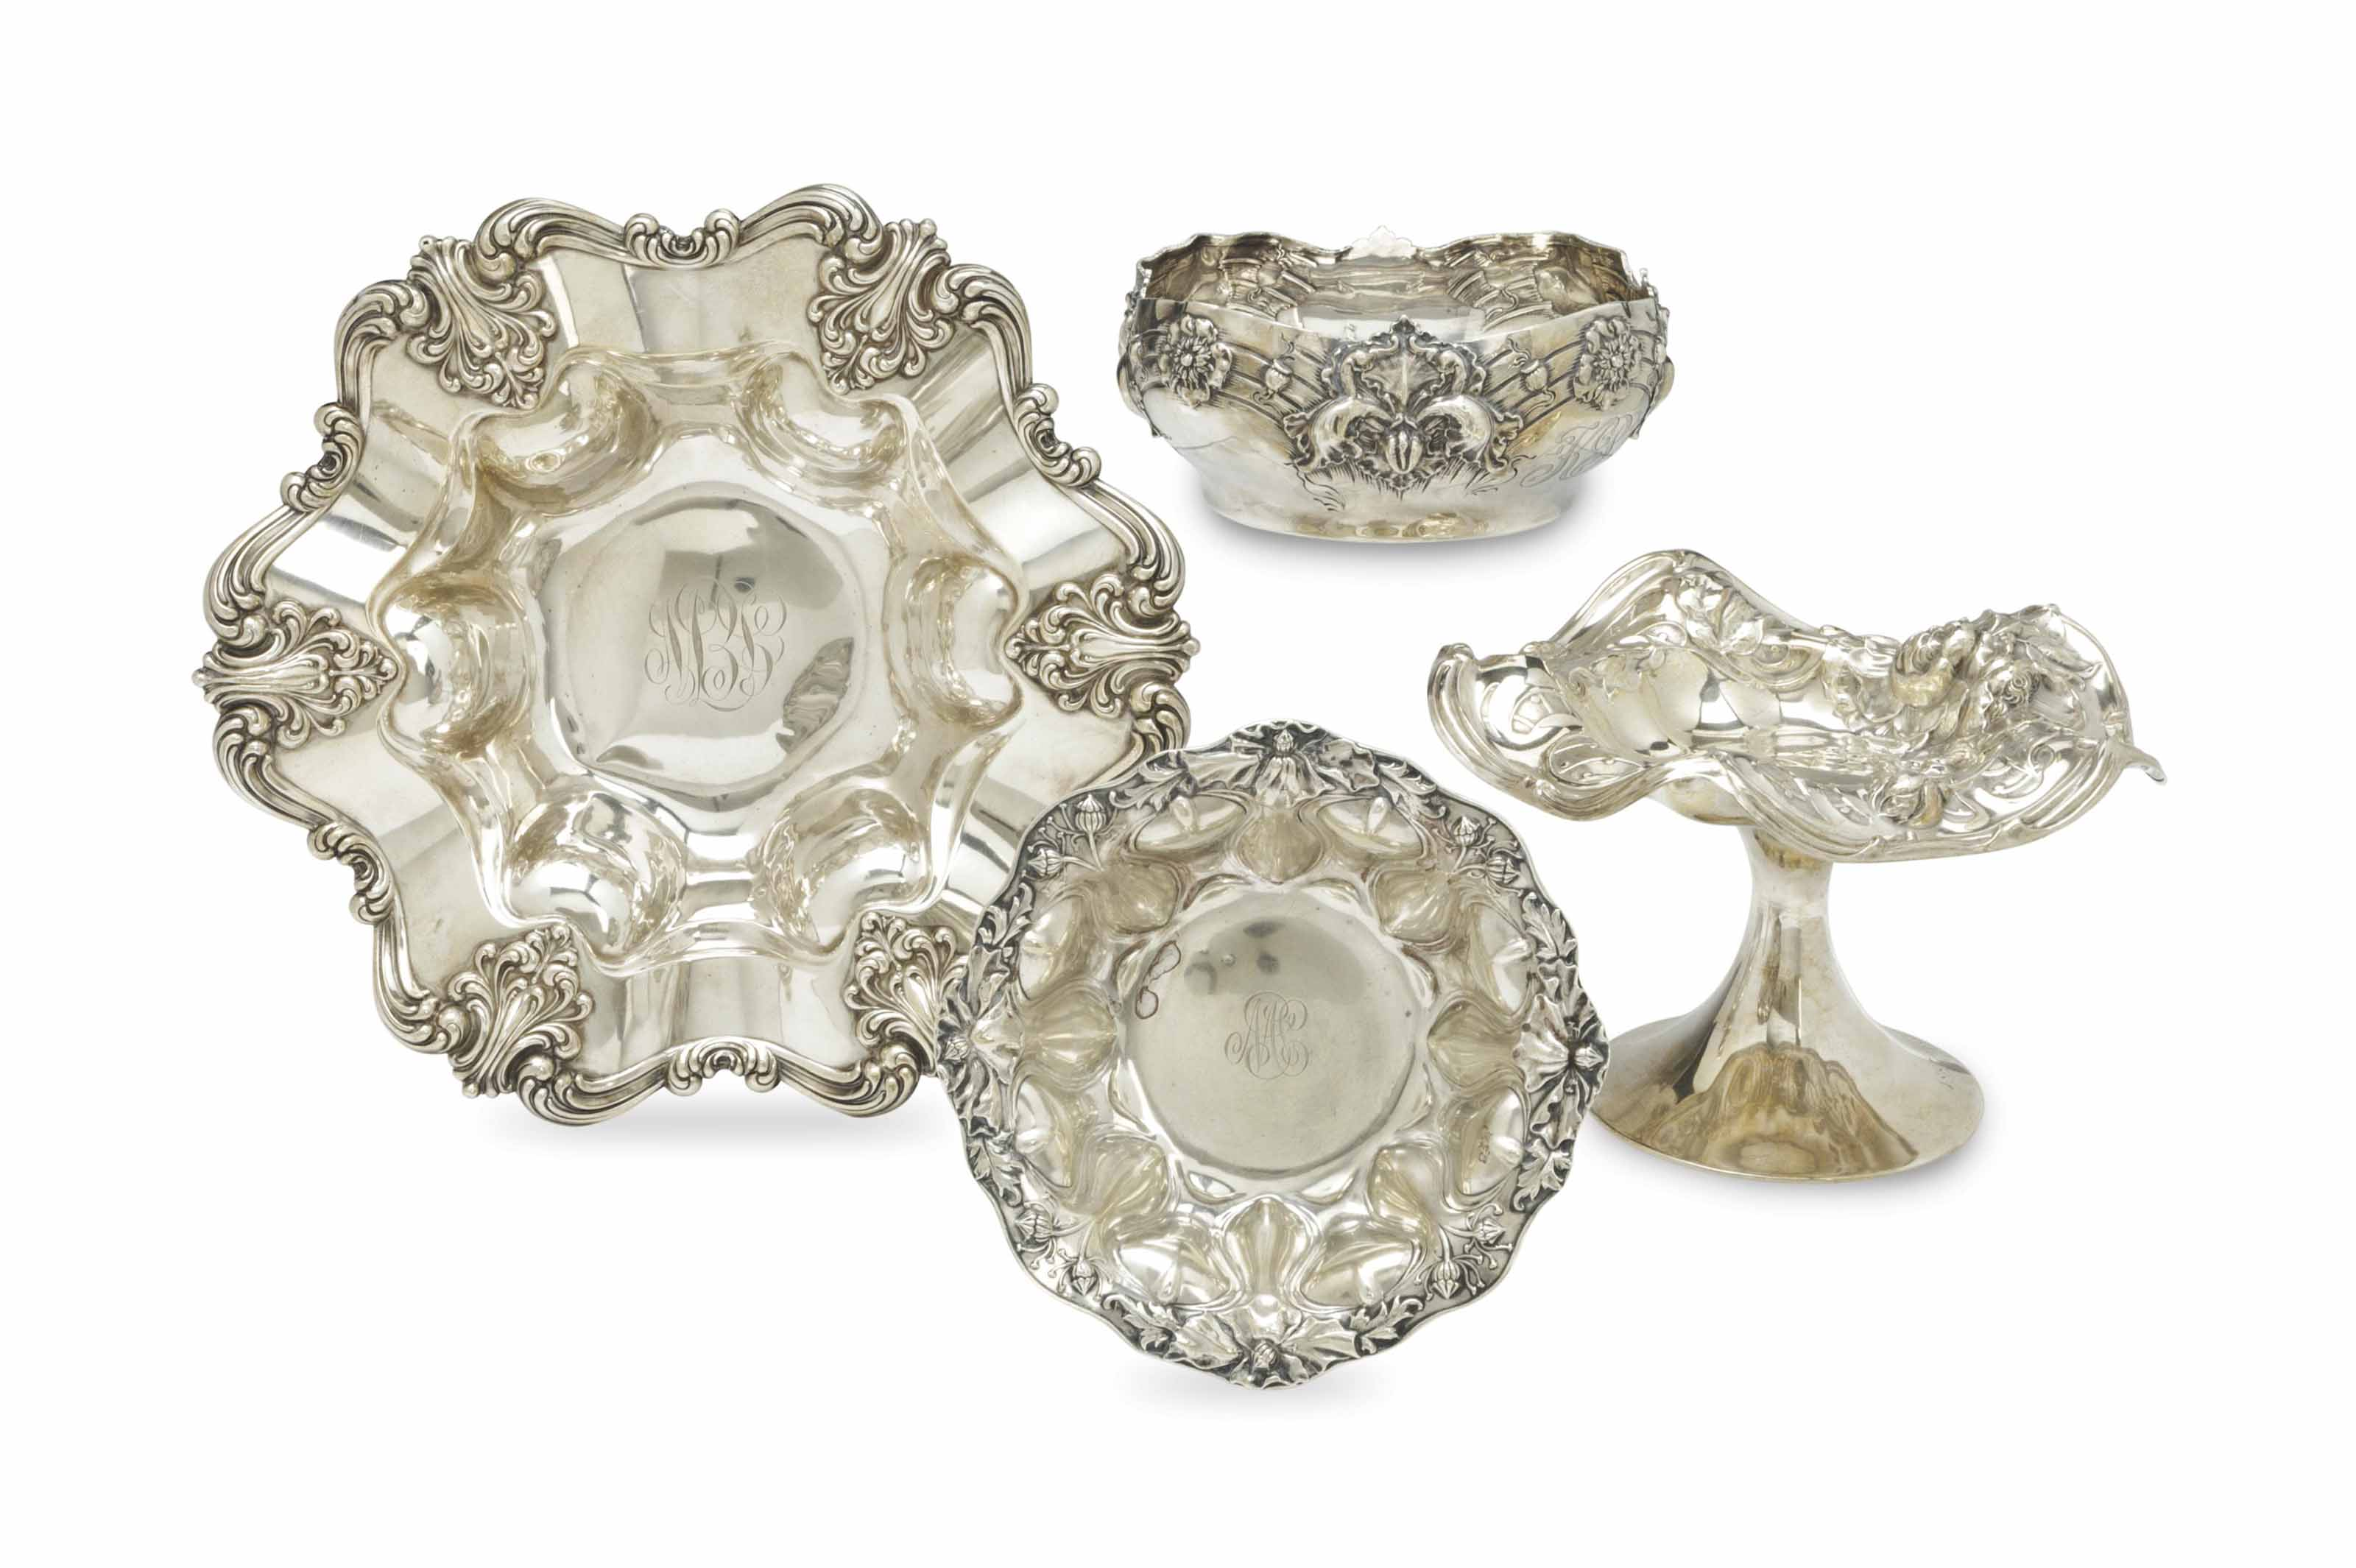 FOUR AMERICAN REPOUSSE SILVER SERVING WARES,